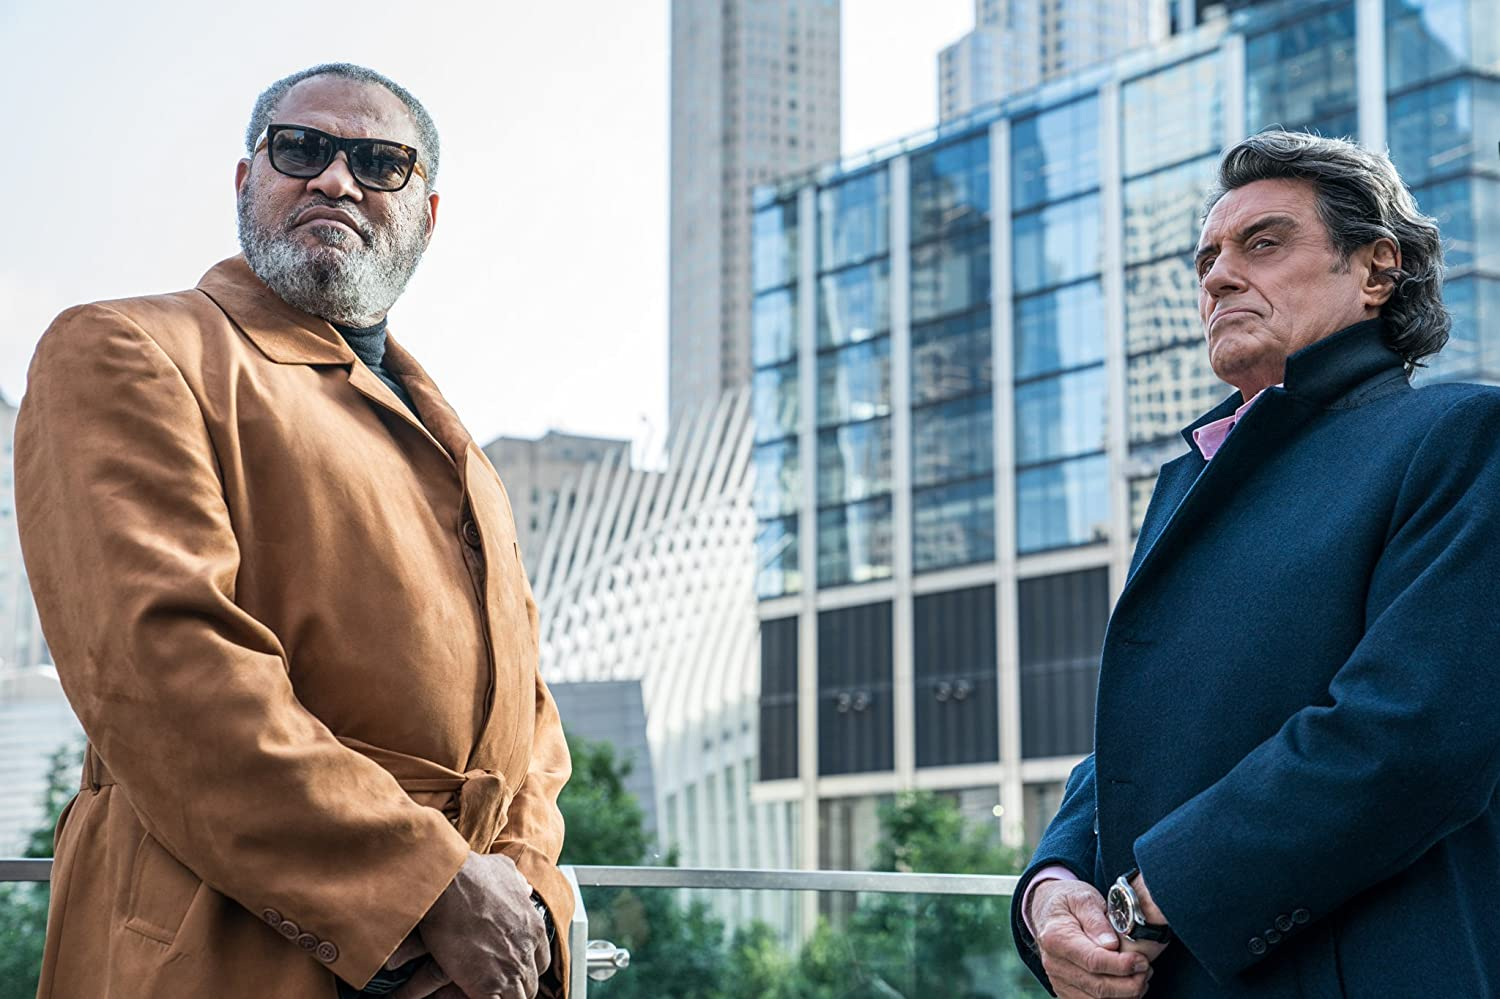 Laurence Fishburne & Ian McShane / John Wick: Chapter 3 - Parabellum. © 2019. All rights reserved.